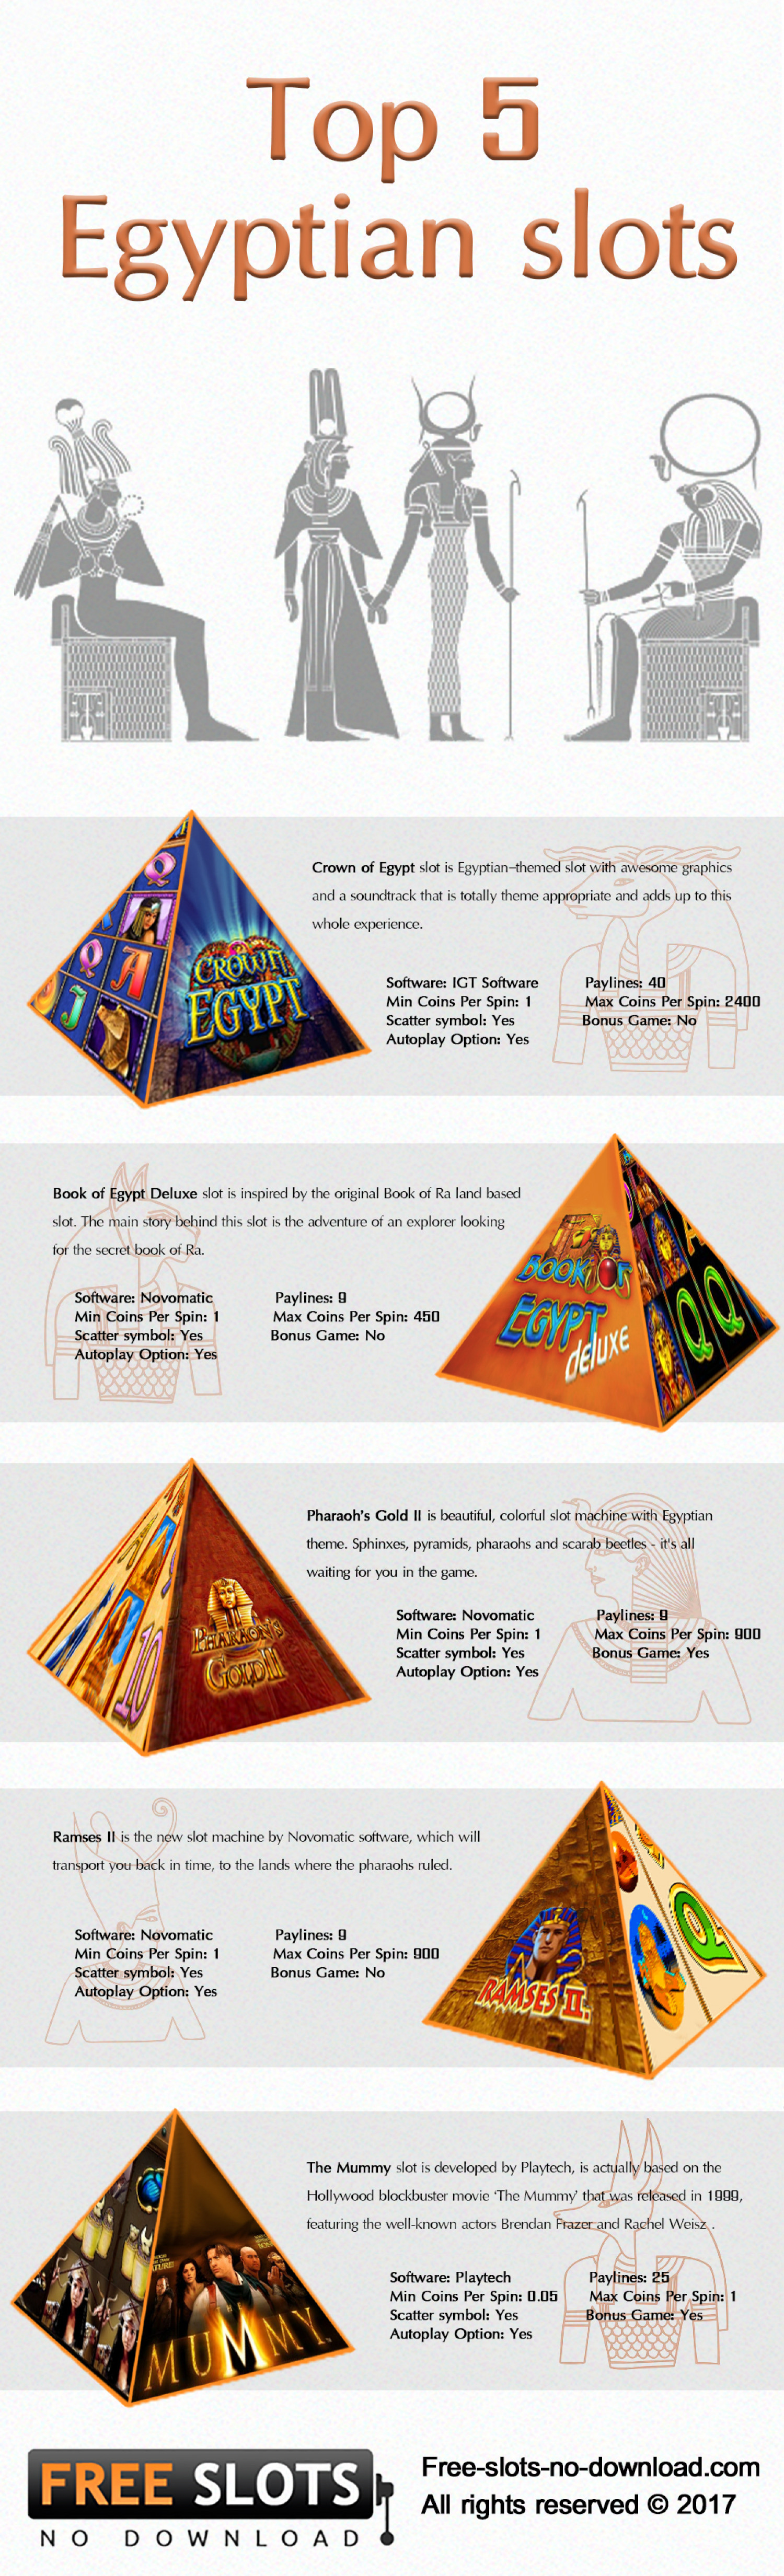 Top 5 Egyptian slots Infographic